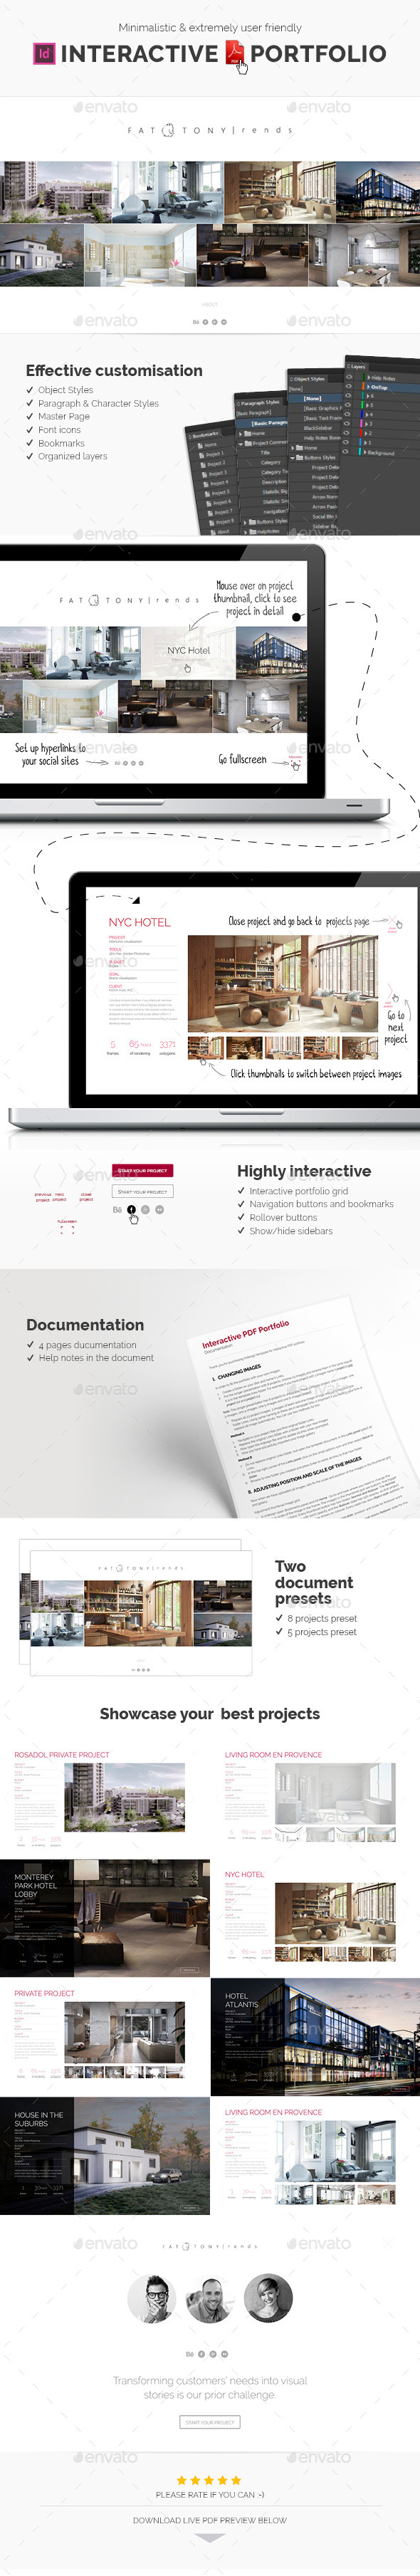 interactive pdf portfolio template design download http